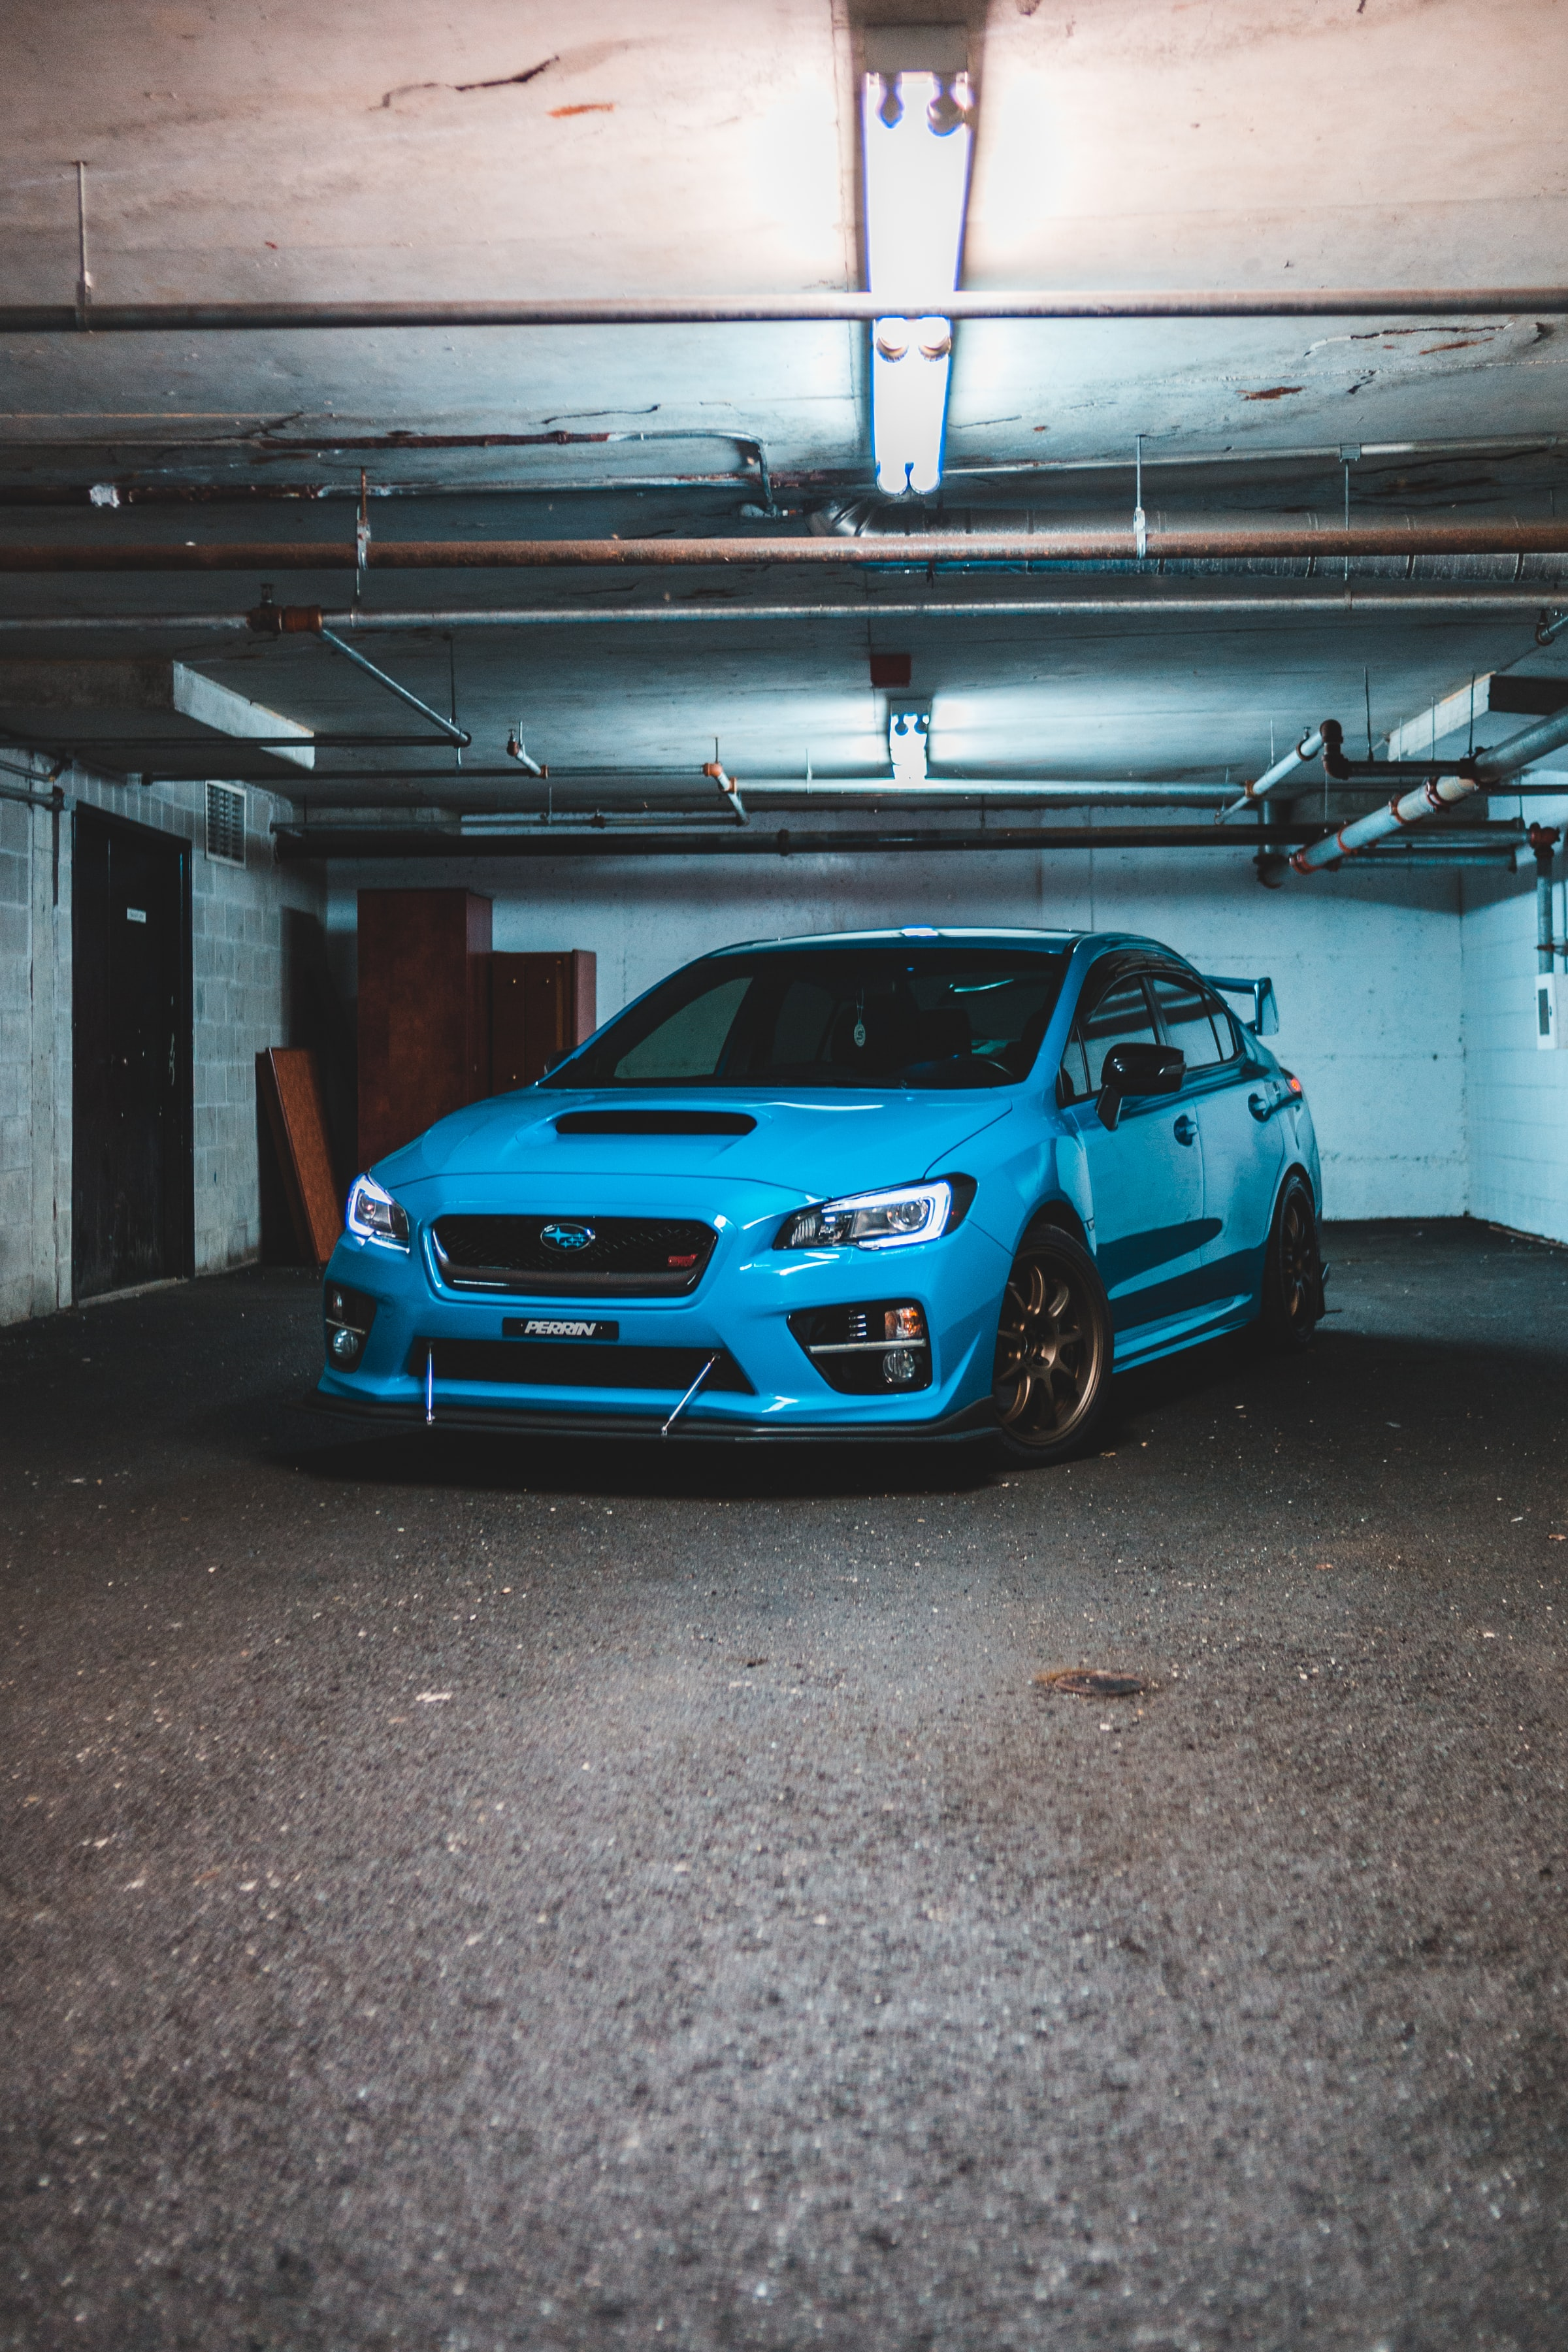 138122 Screensavers and Wallpapers Subaru for phone. Download Sports, Subaru, Cars, Car, Front View, Sports Car, Subaru Wrx pictures for free